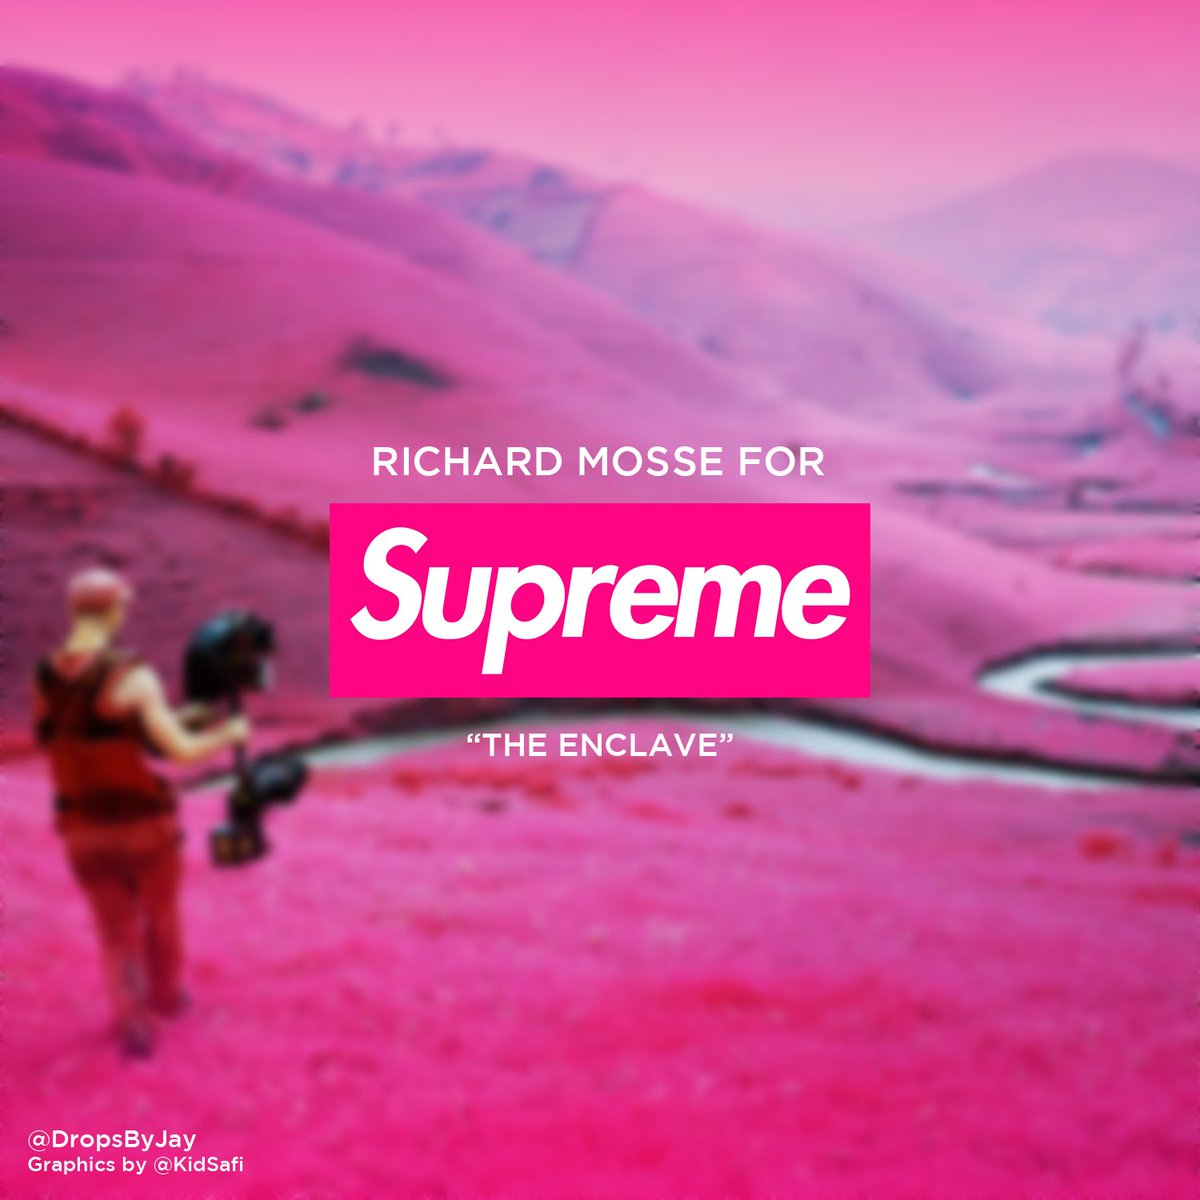 Richard Mosse x Supreme Coming in SS18 (Spring / Summer 2018)